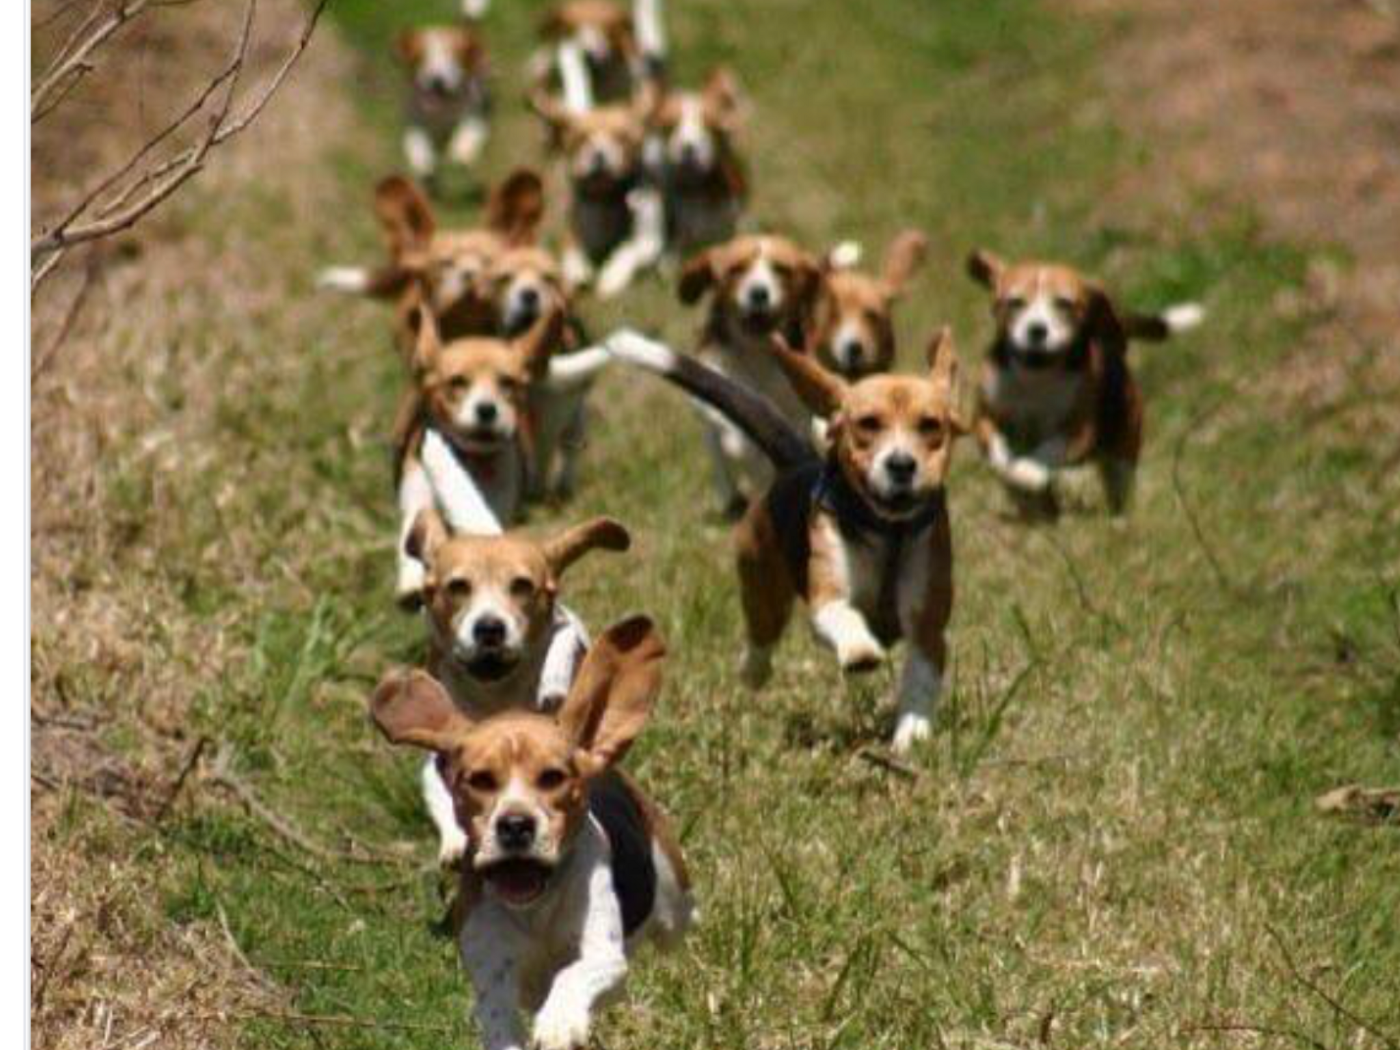 A pack of running beagles